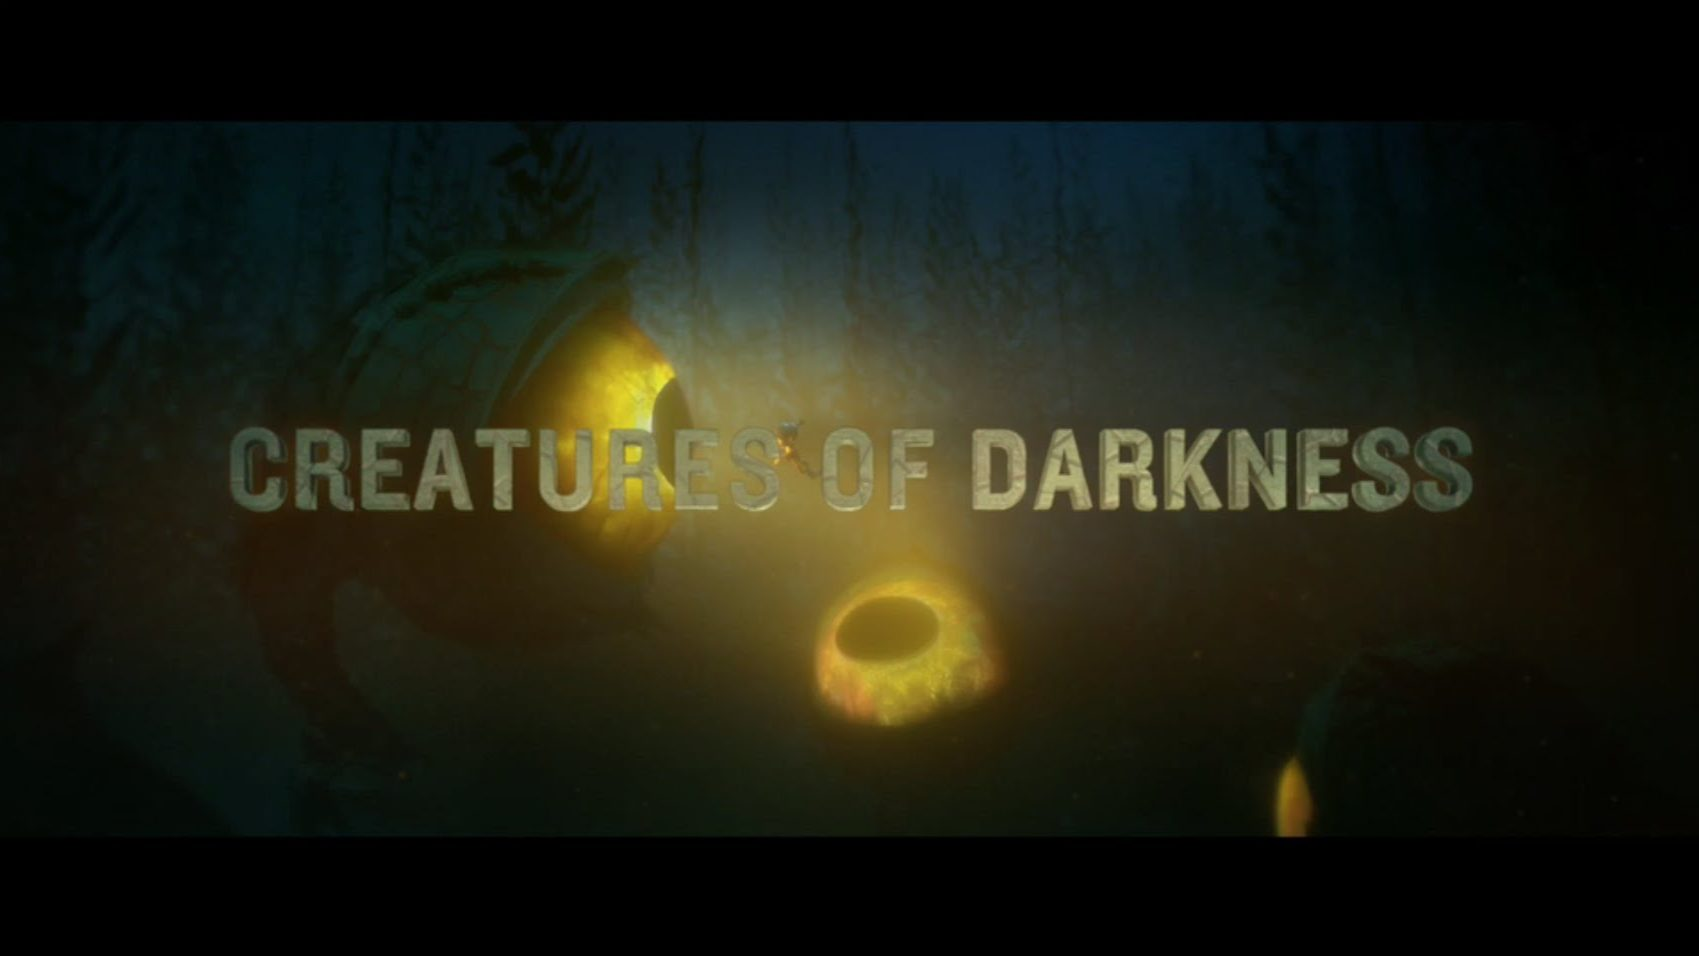 KUBO AND THE TWO STRINGS – 'Creatures of Darkness' Featurette – In Theaters August 19